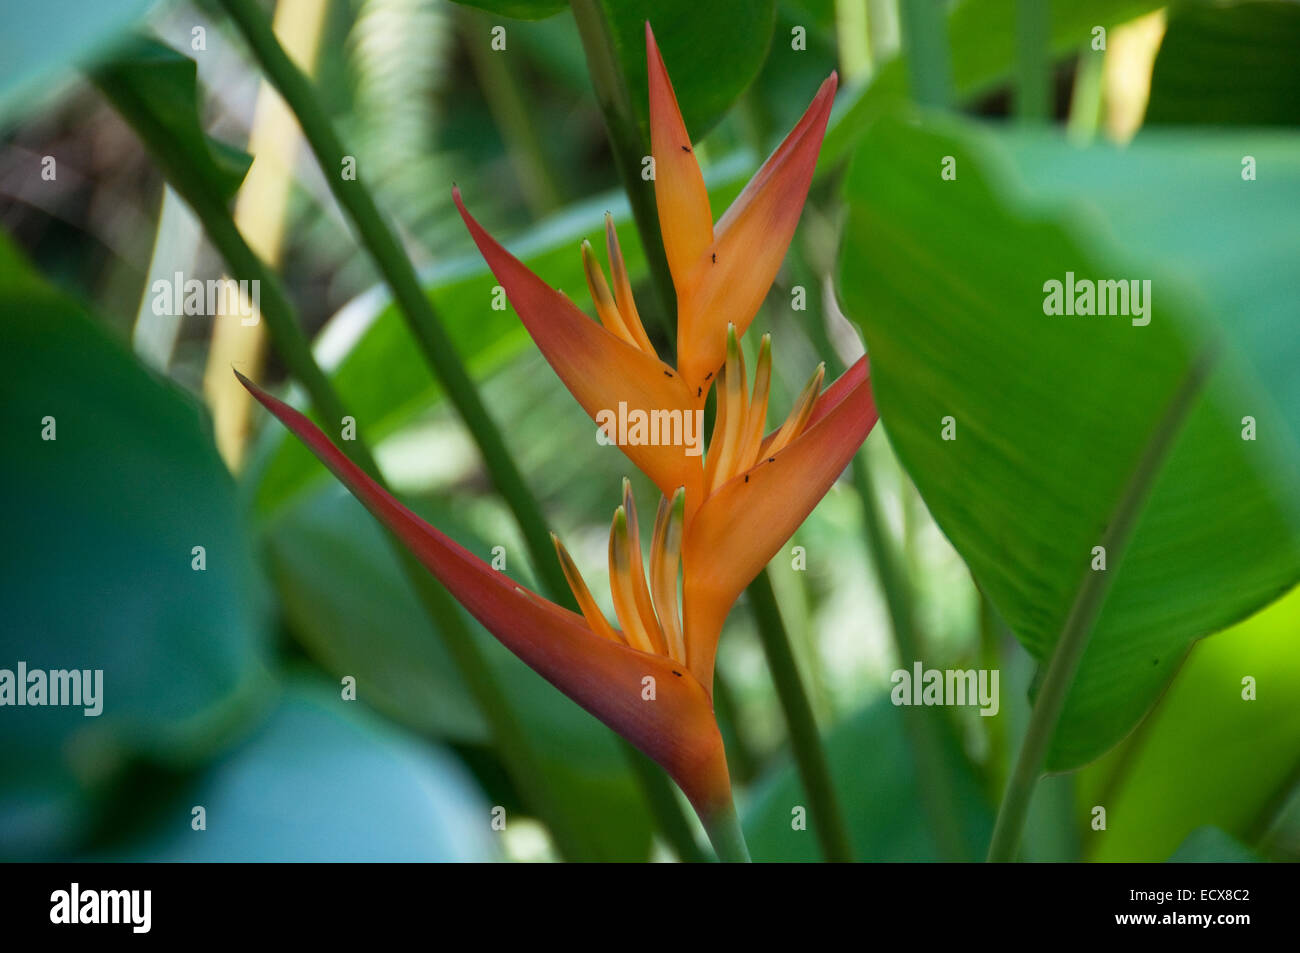 A Heliconia flower with ants walking on it, photographed at the Eden Project in Cornwall, UK - Stock Image